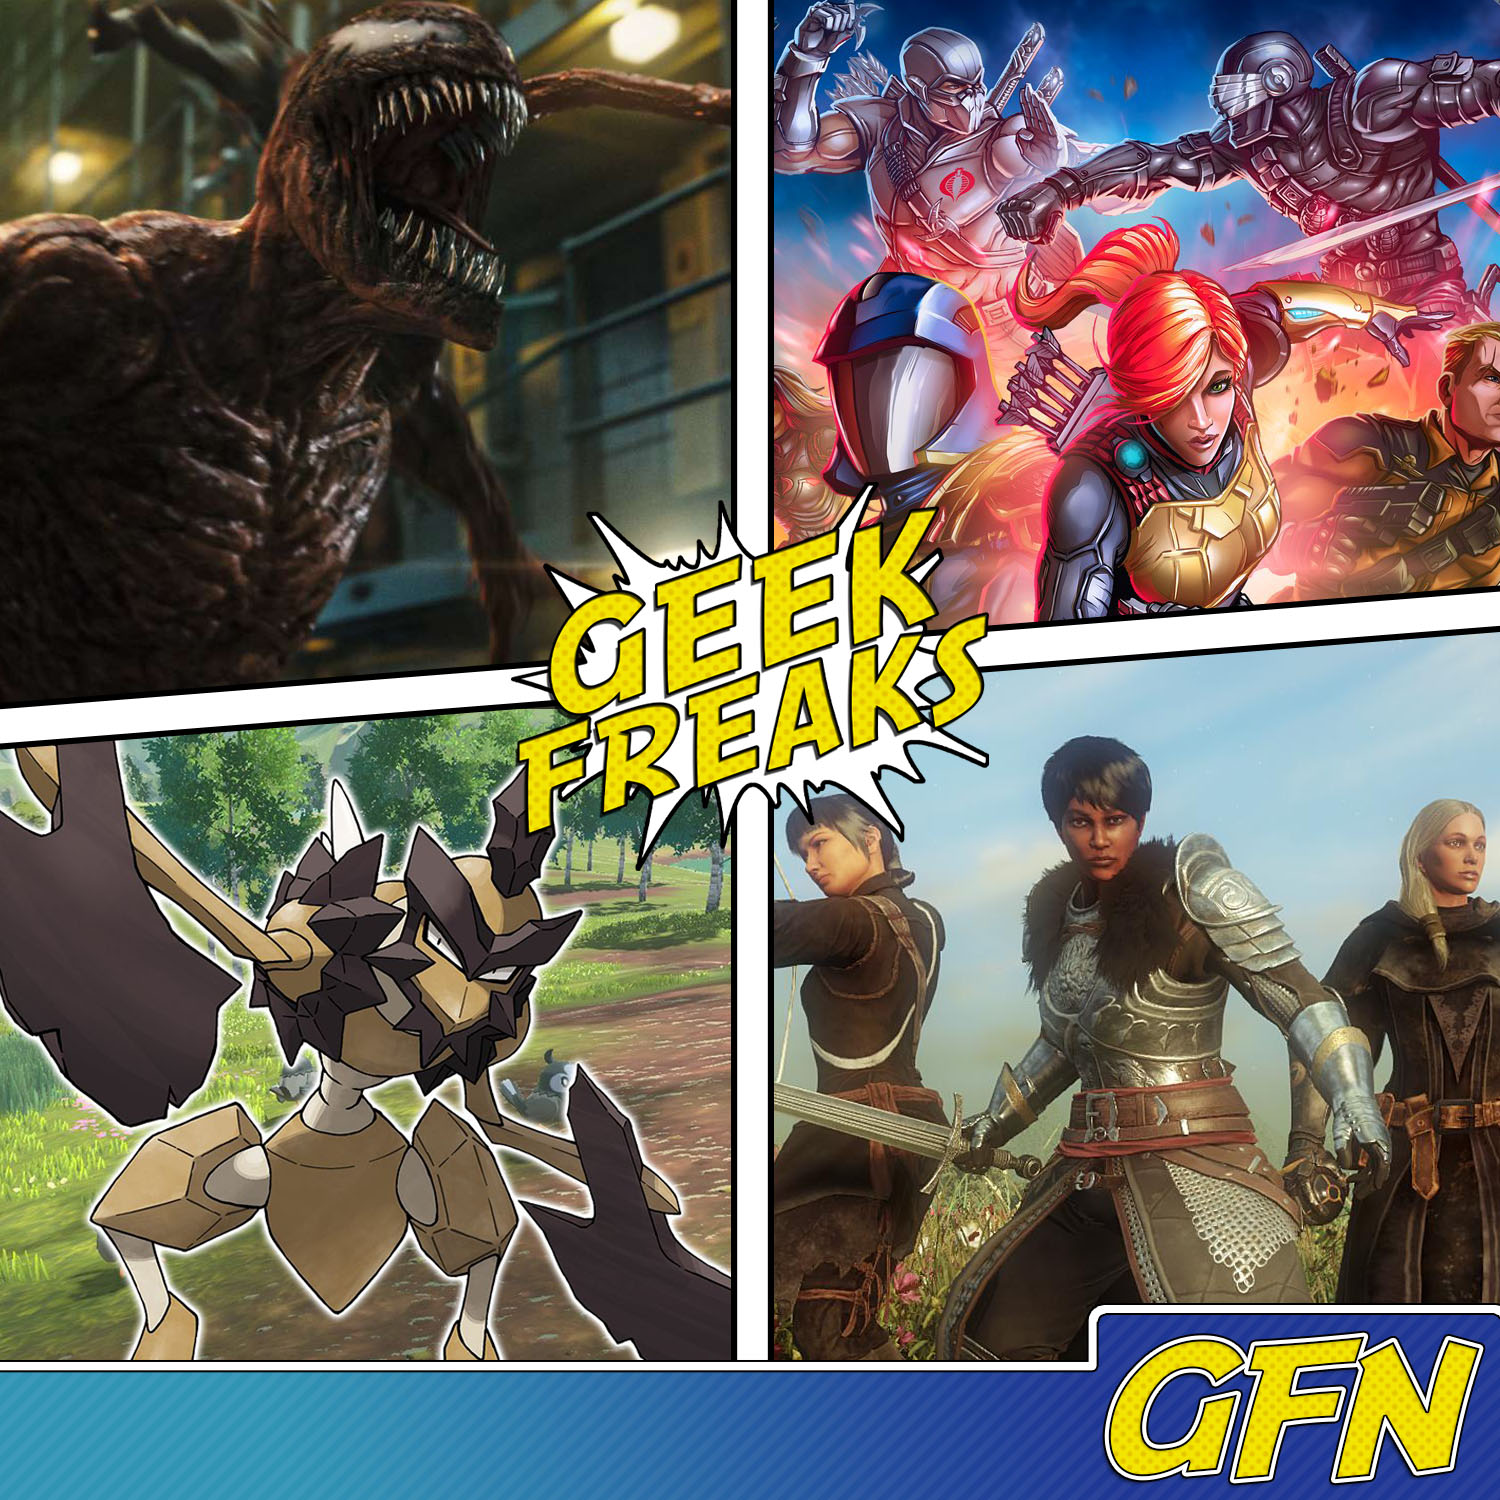 News - Carnage, New World, China's New Gaming Restrictions and more show art